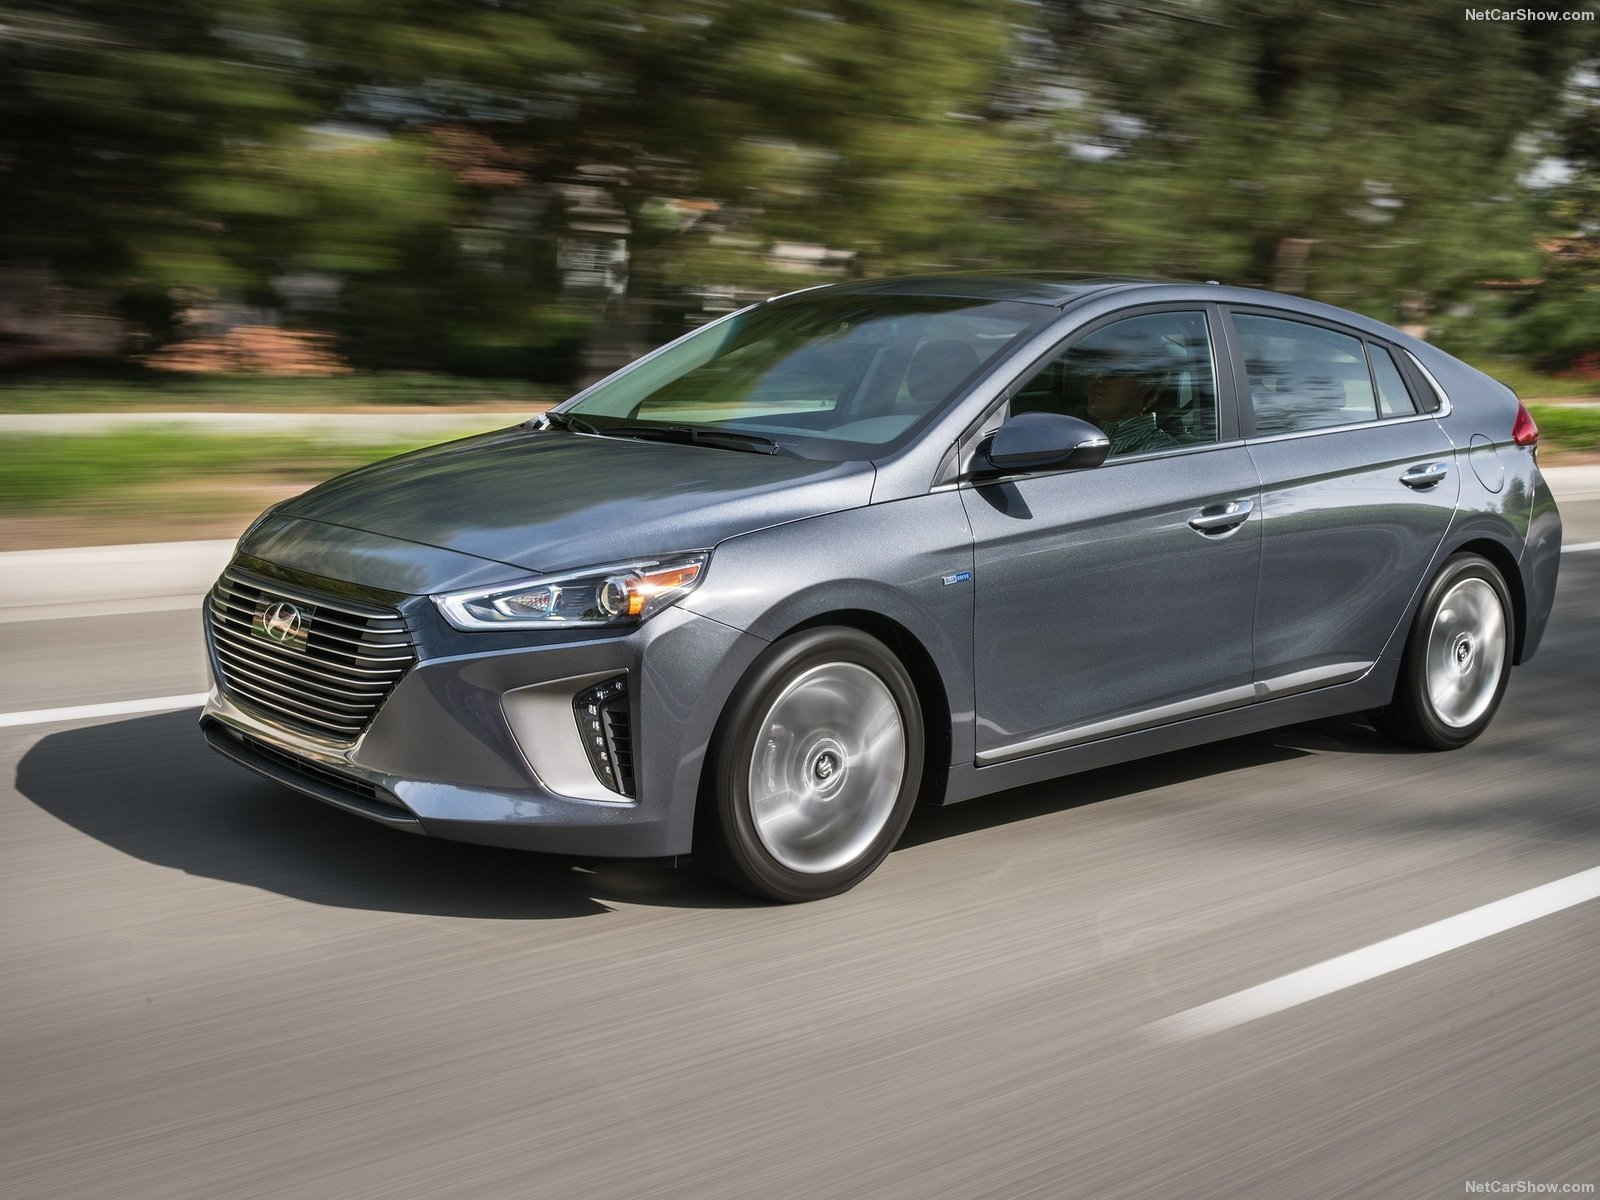 Hyundai Ioniq Electric Hybrid Vehicle In London Finch Toyota Developing Worldfirst Wiring Harnesses Recycling